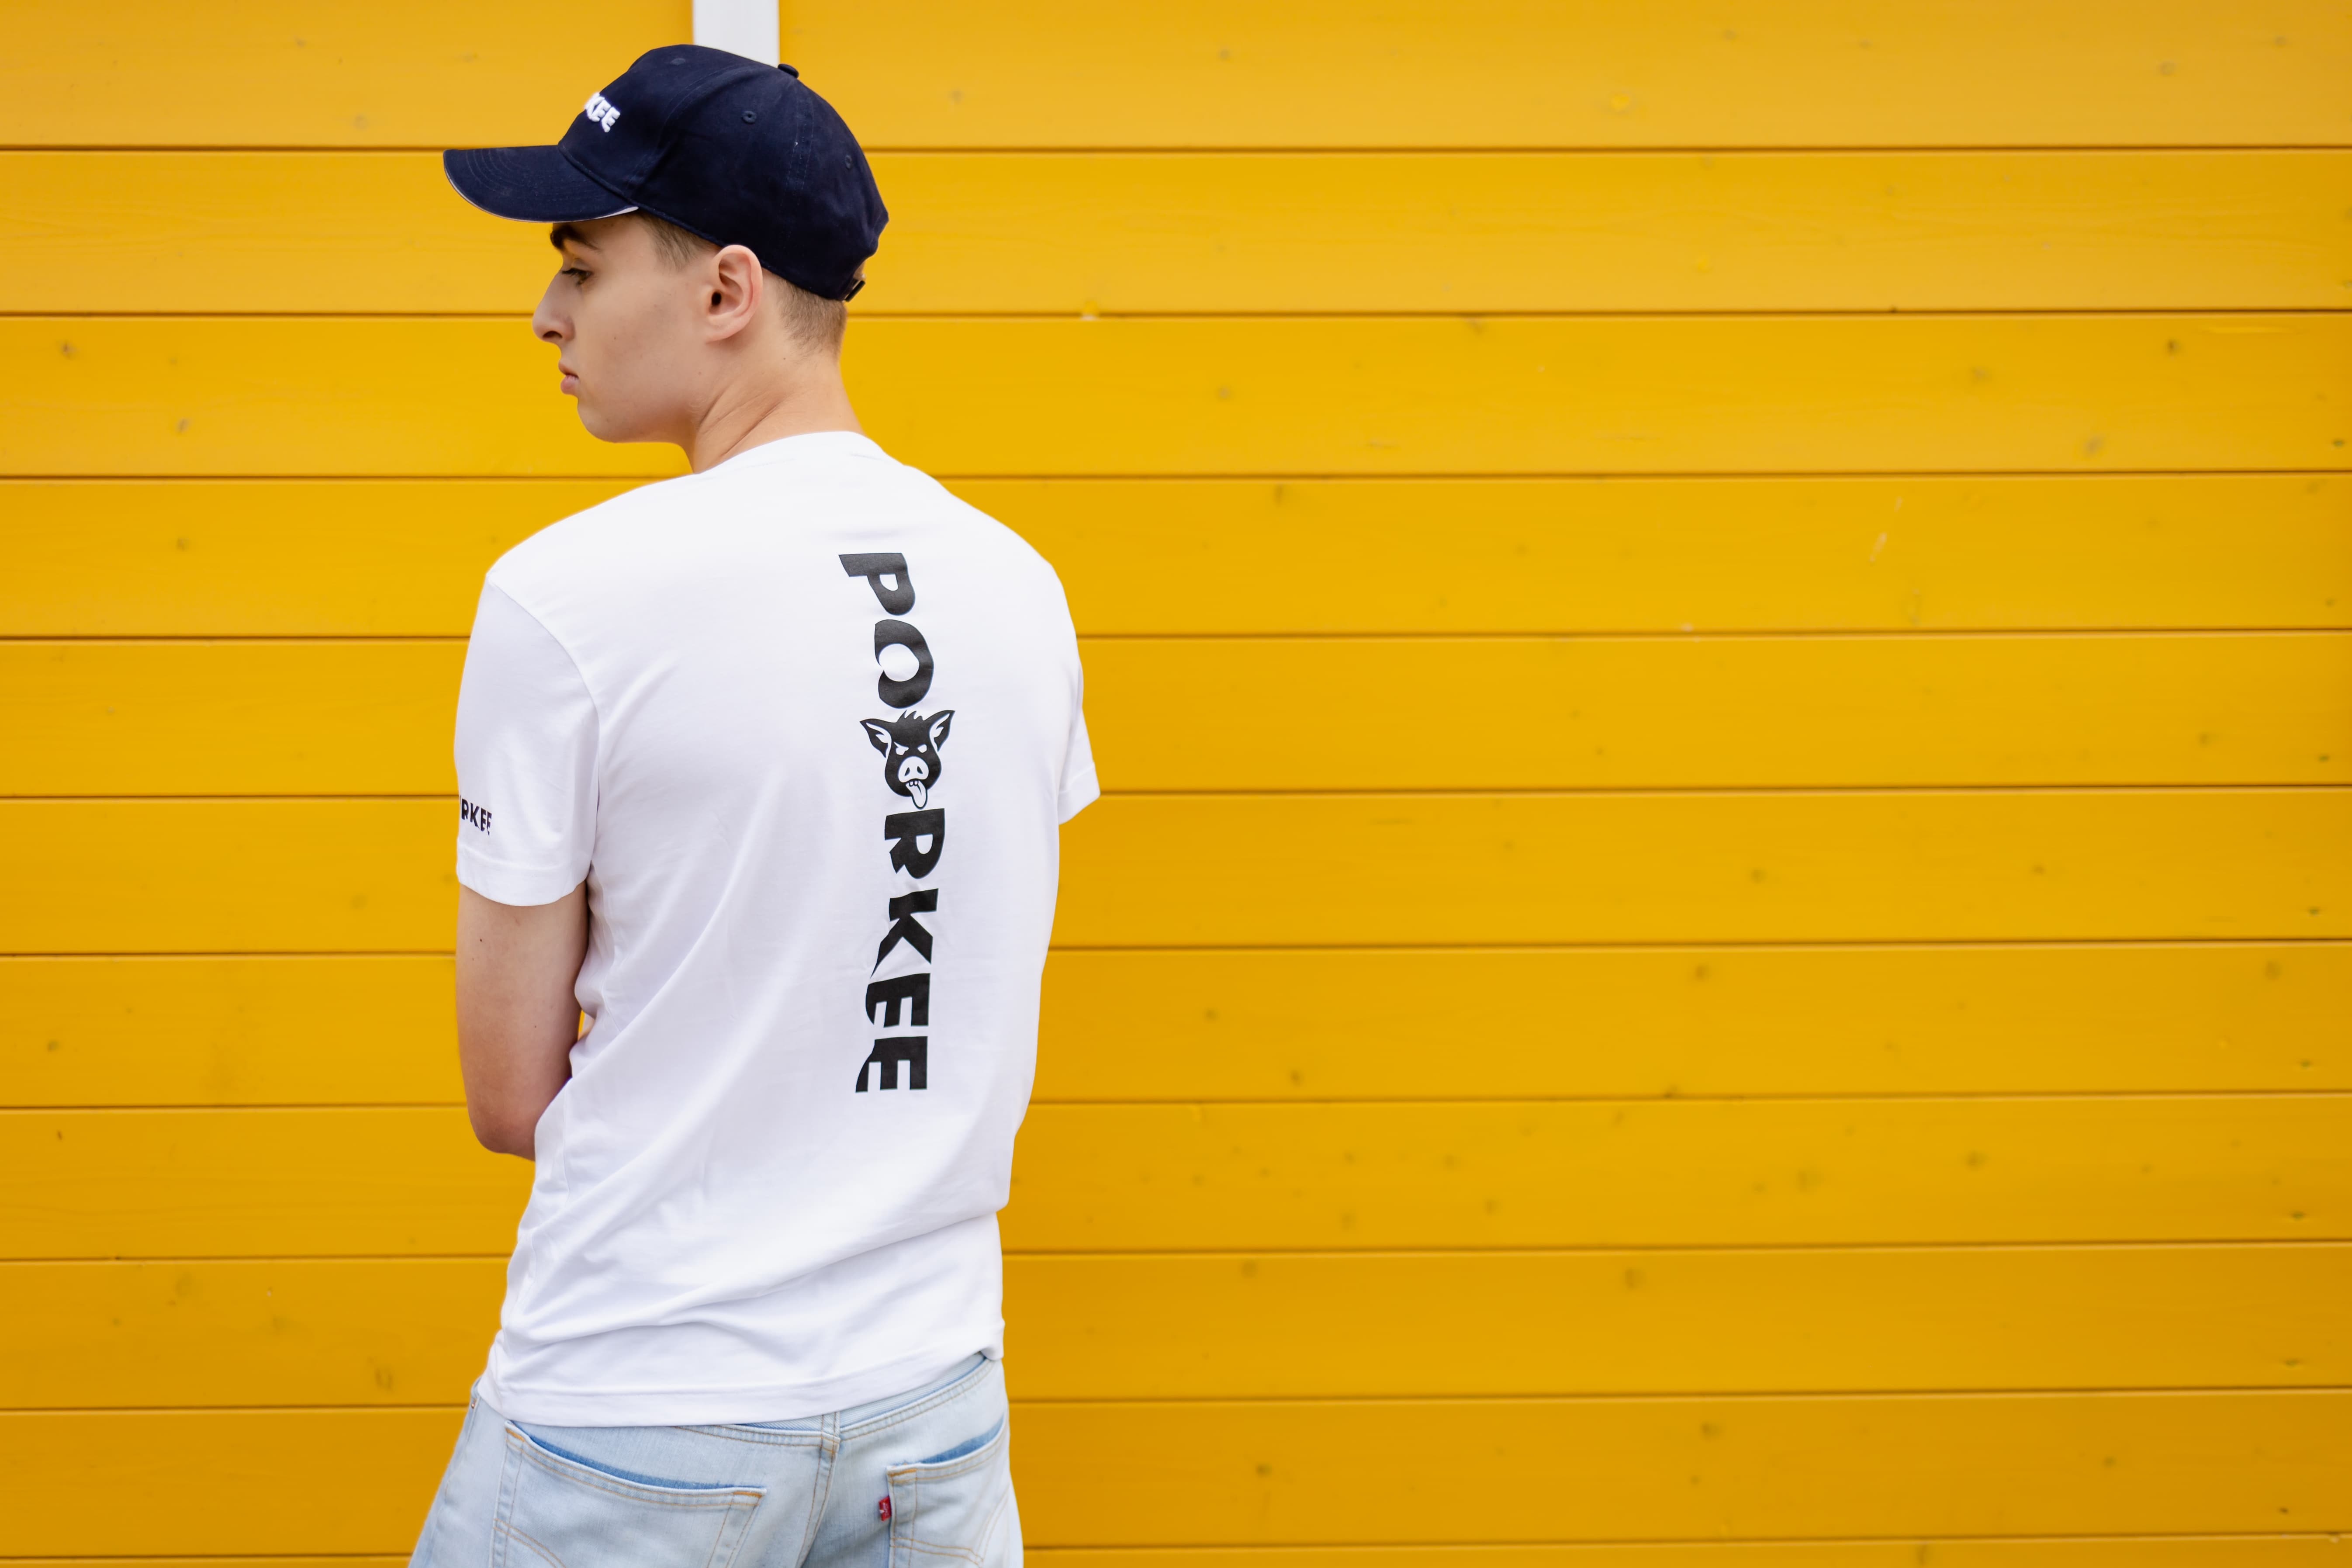 the boy presents a white T-shirt and a black cap on a yellow background